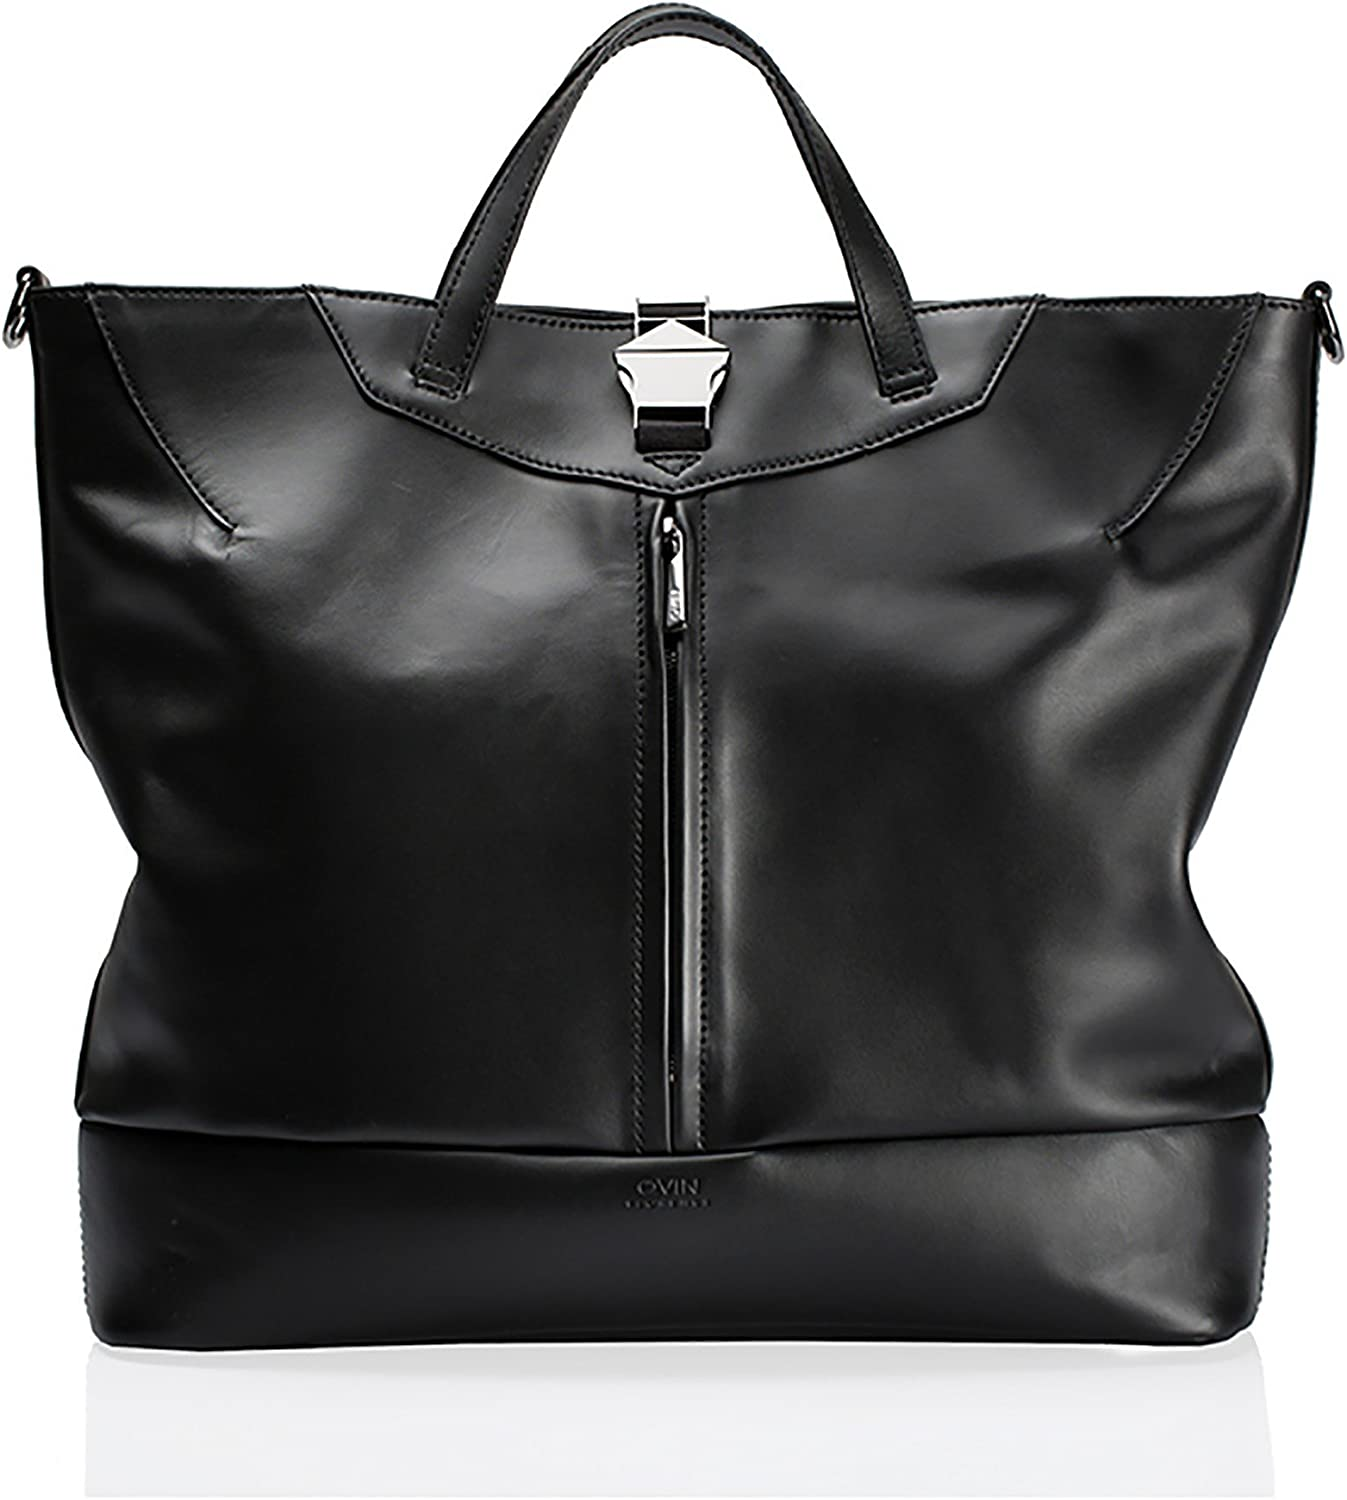 Qvin  Elements  Tote in Black Leather